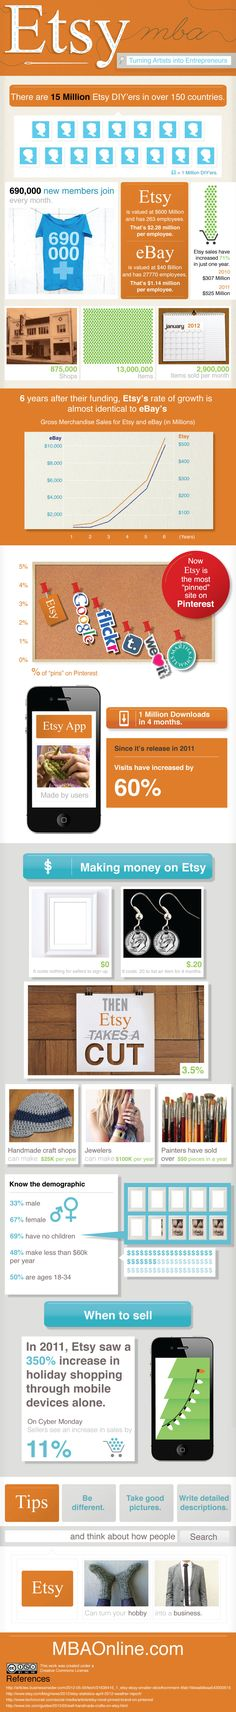 How @Etsy turns crafters into business professionals! via @Mashable